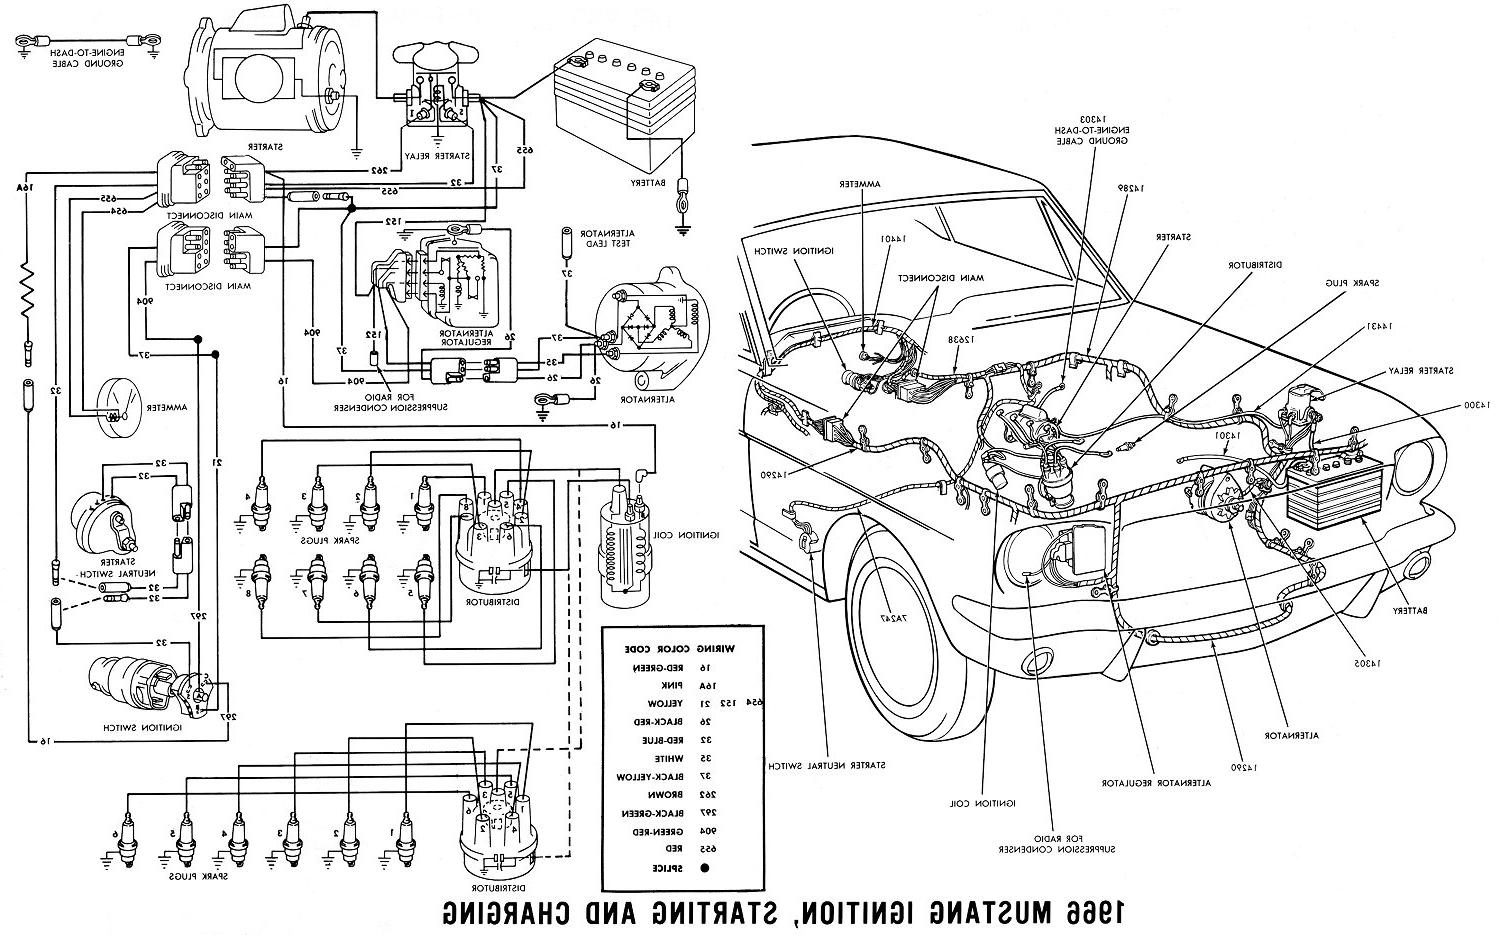 1965 Dodge Coronet Wiring Diagram Easy Diagrams Schematics Images Gallery